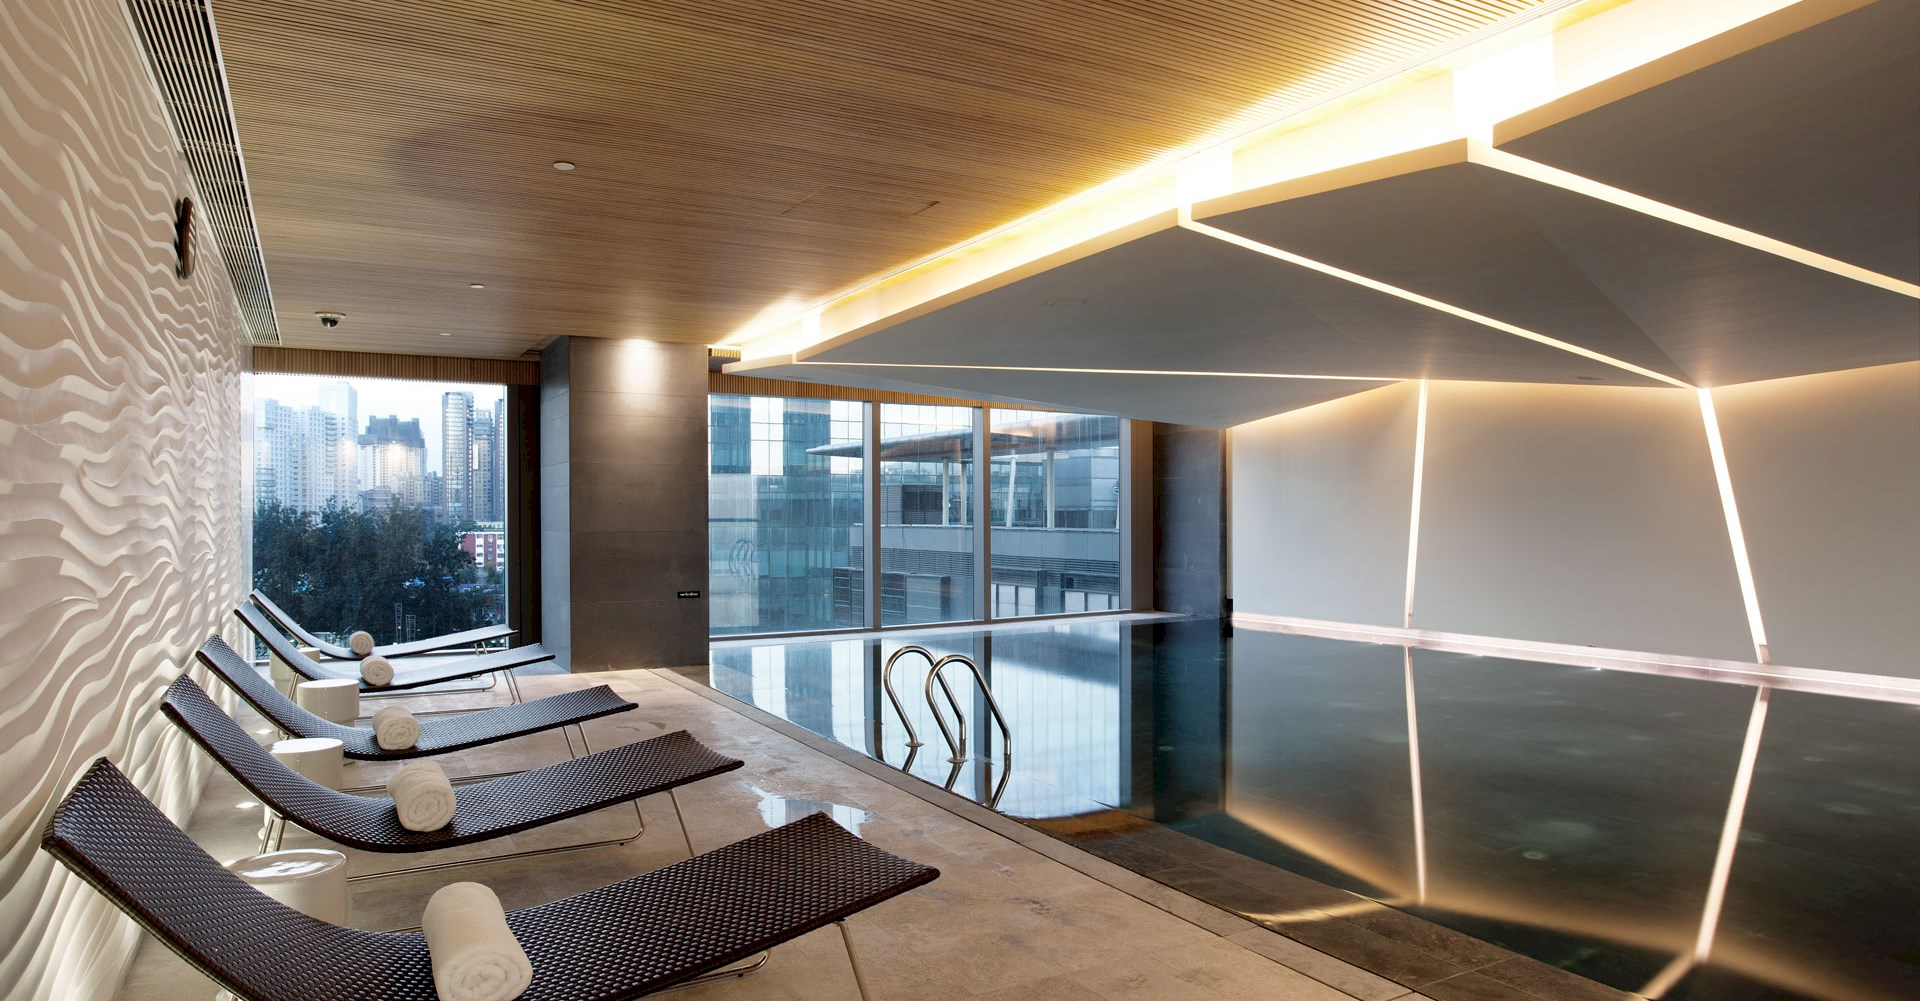 Top Interior Designers Benoy Best East Hotel Is A High End Contemporary That Has Been Designed As Part Of The Wider Mixed Use Indigo Development In Beijing   ...